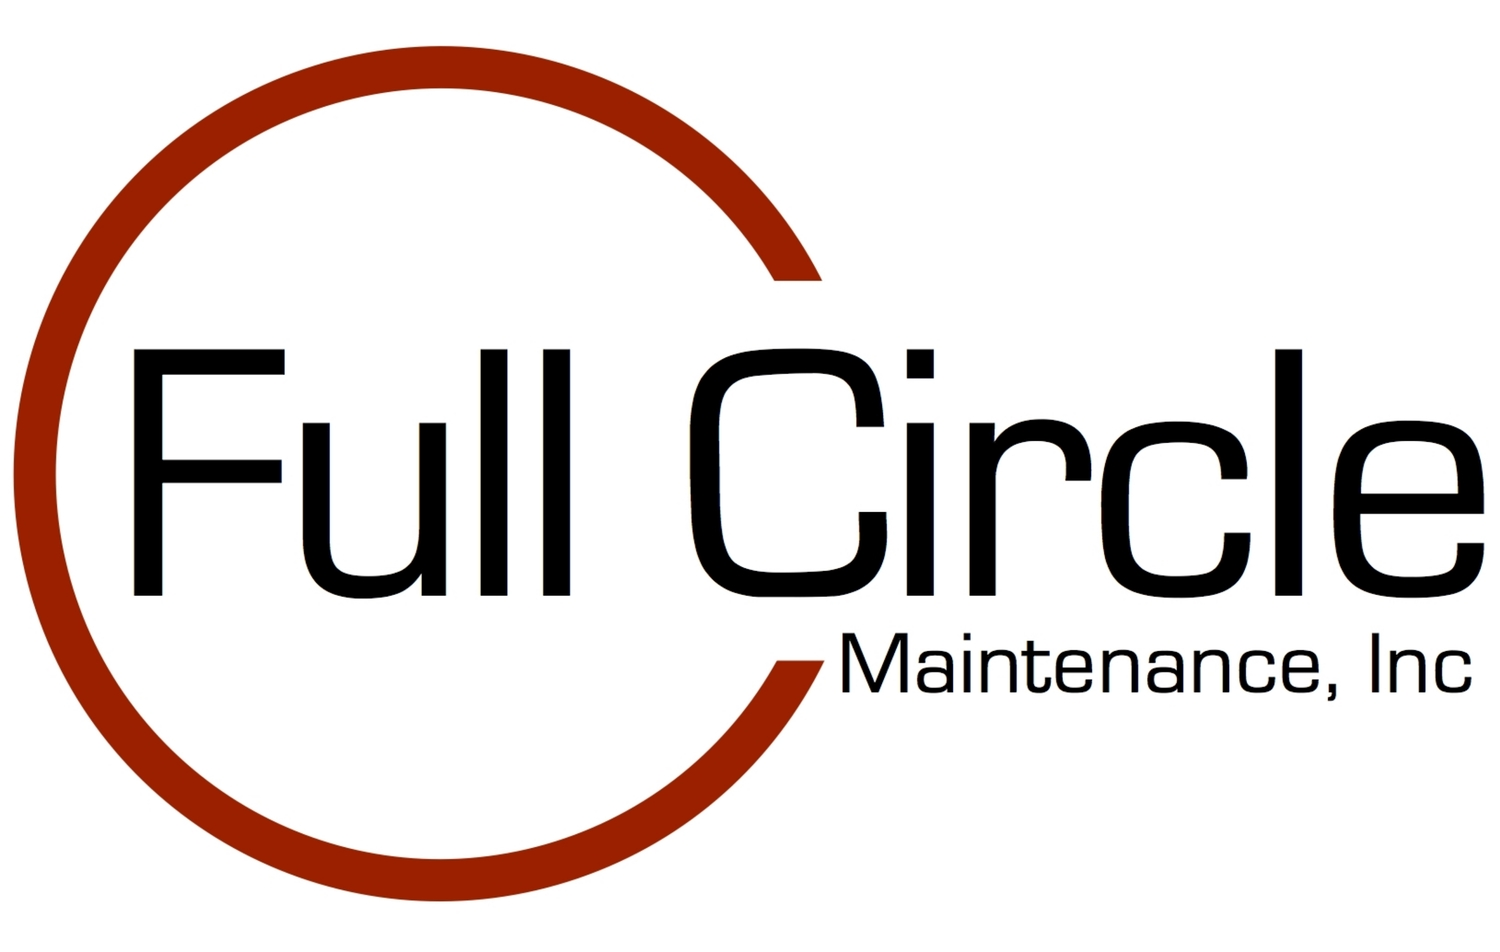 Full Circle Maintenance